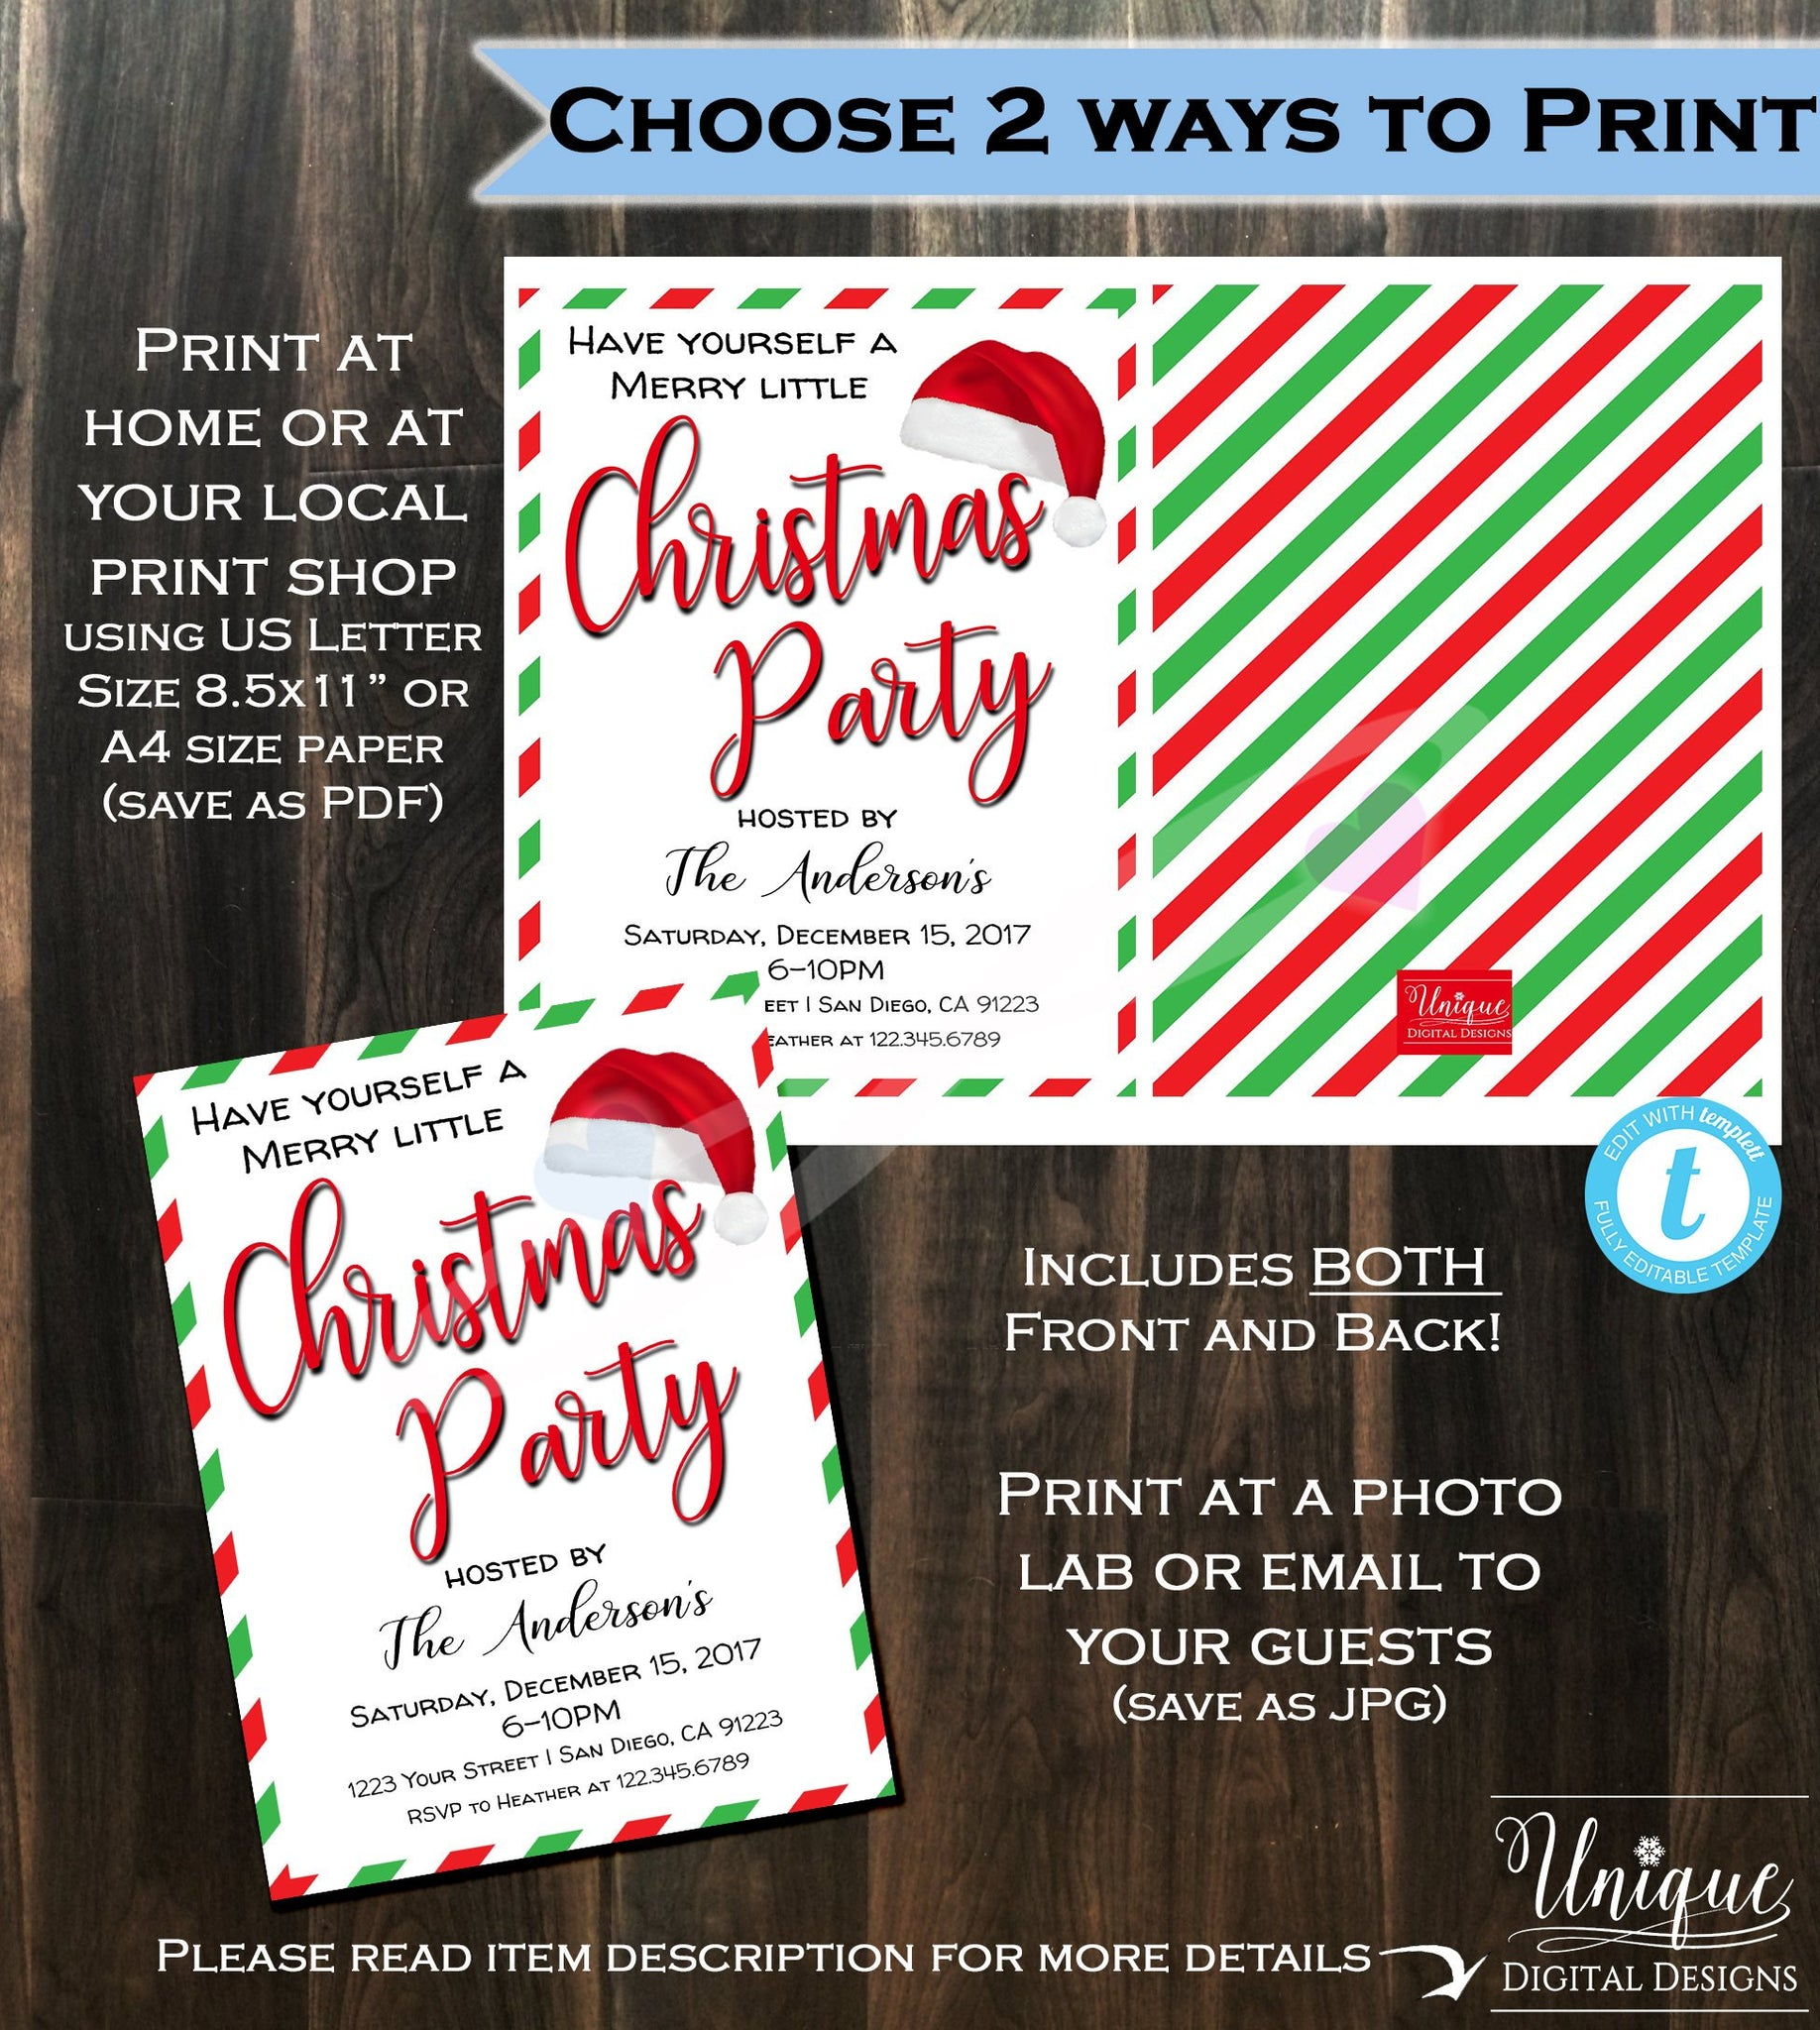 Christmas party invitation happy holiday party merry white elephant christmas party invitation happy holiday party merry white elephant gift exchange xmas printable custom solutioingenieria Image collections